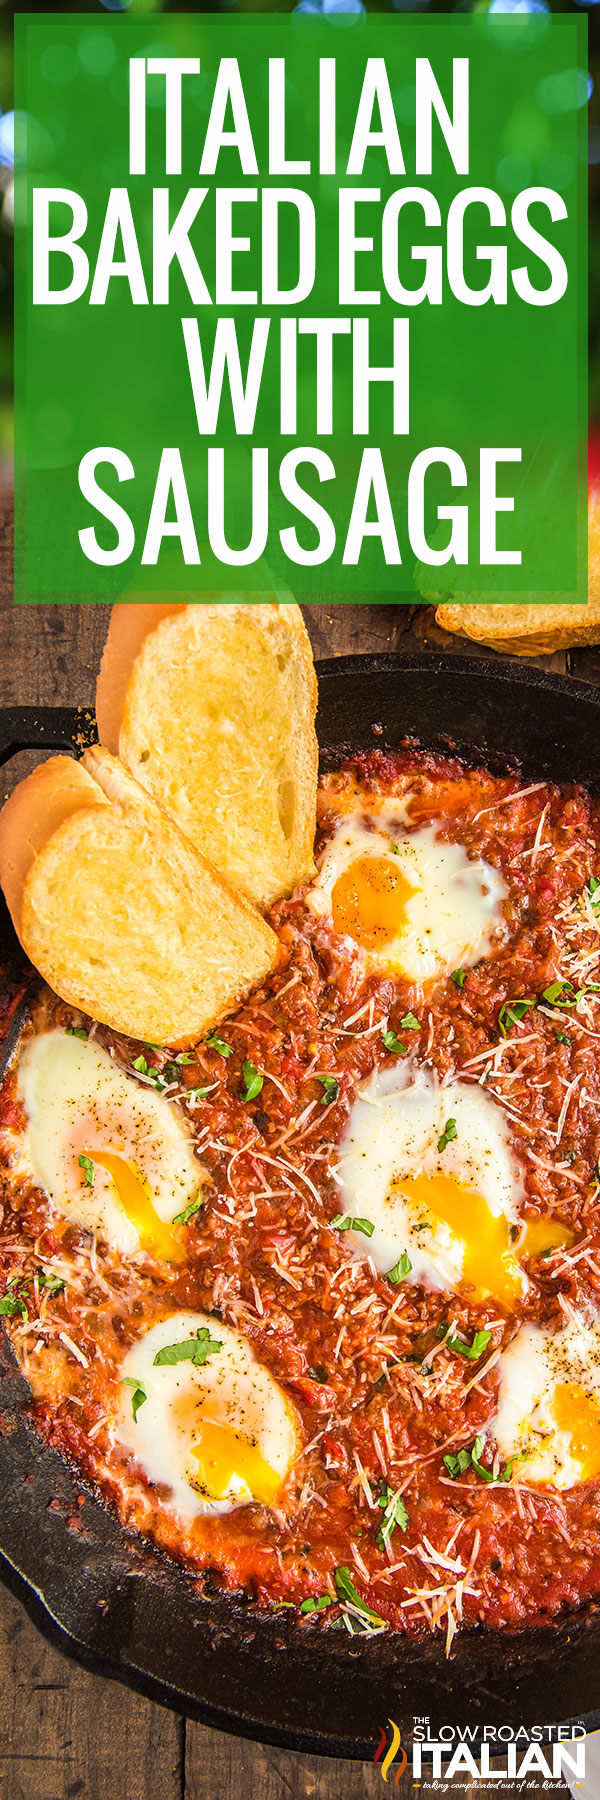 Italian Baked Eggs with Sausage in a skillet with bread